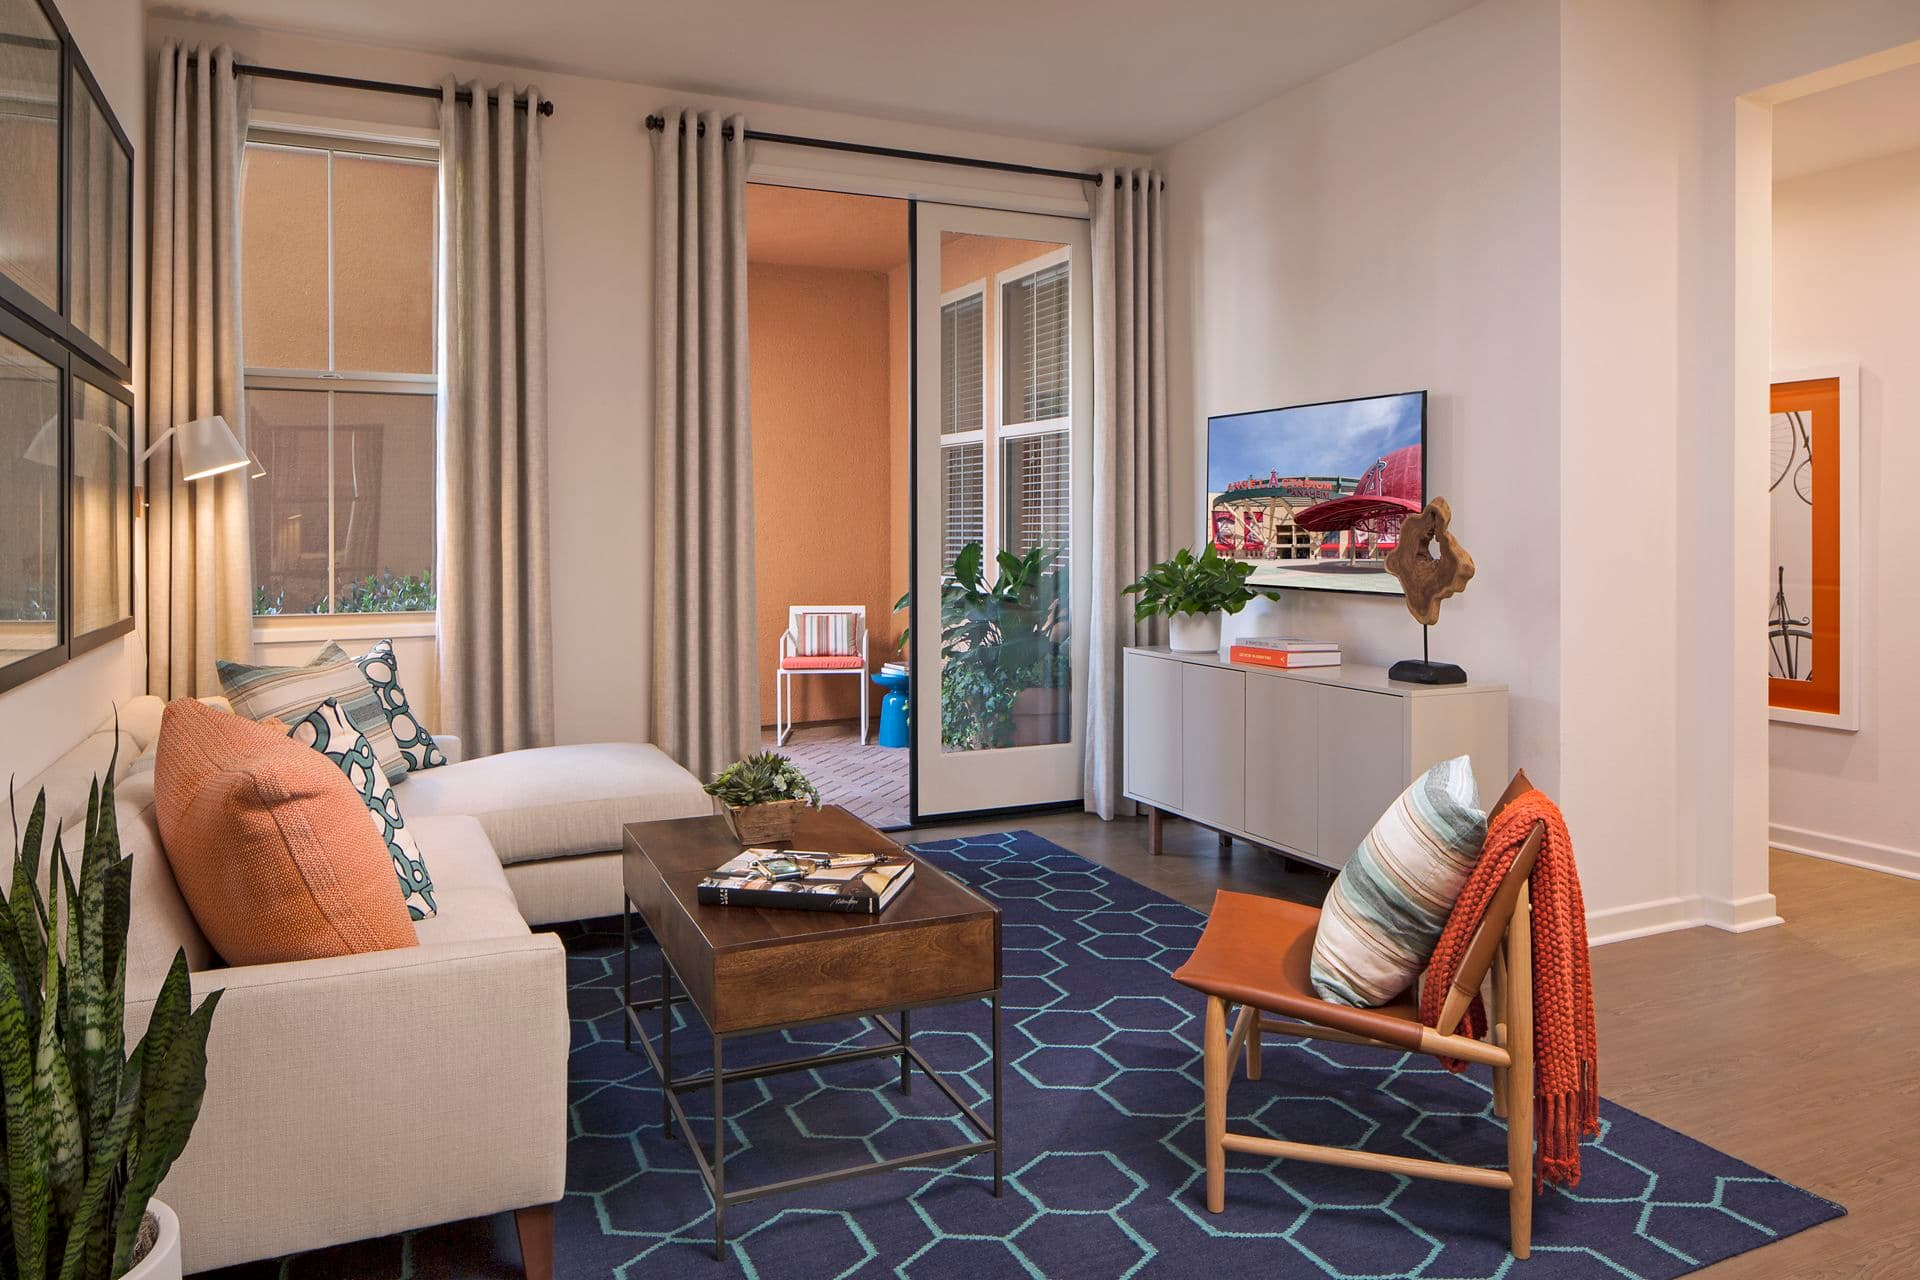 Interior views of living room and patio at Gateway Apartment Homes in Orange, CA.